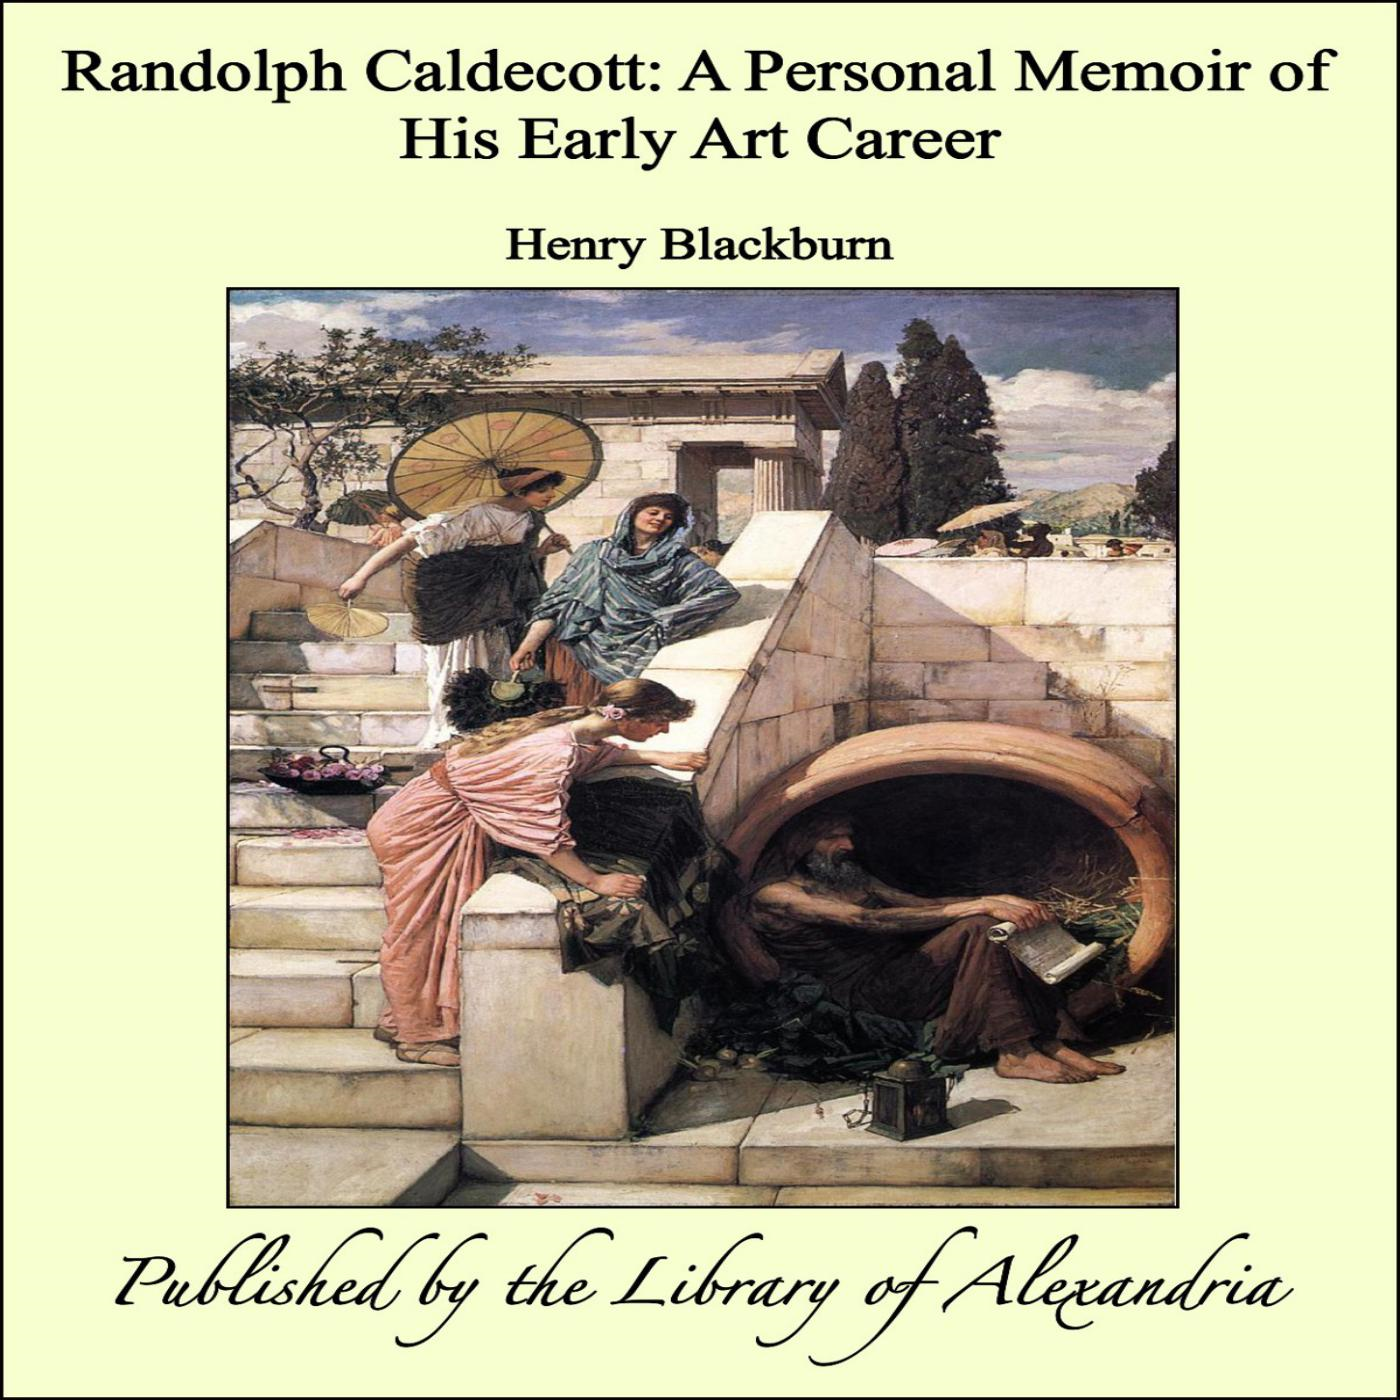 Randolph Caldecott: A Personal Memoir of His Early Art Career